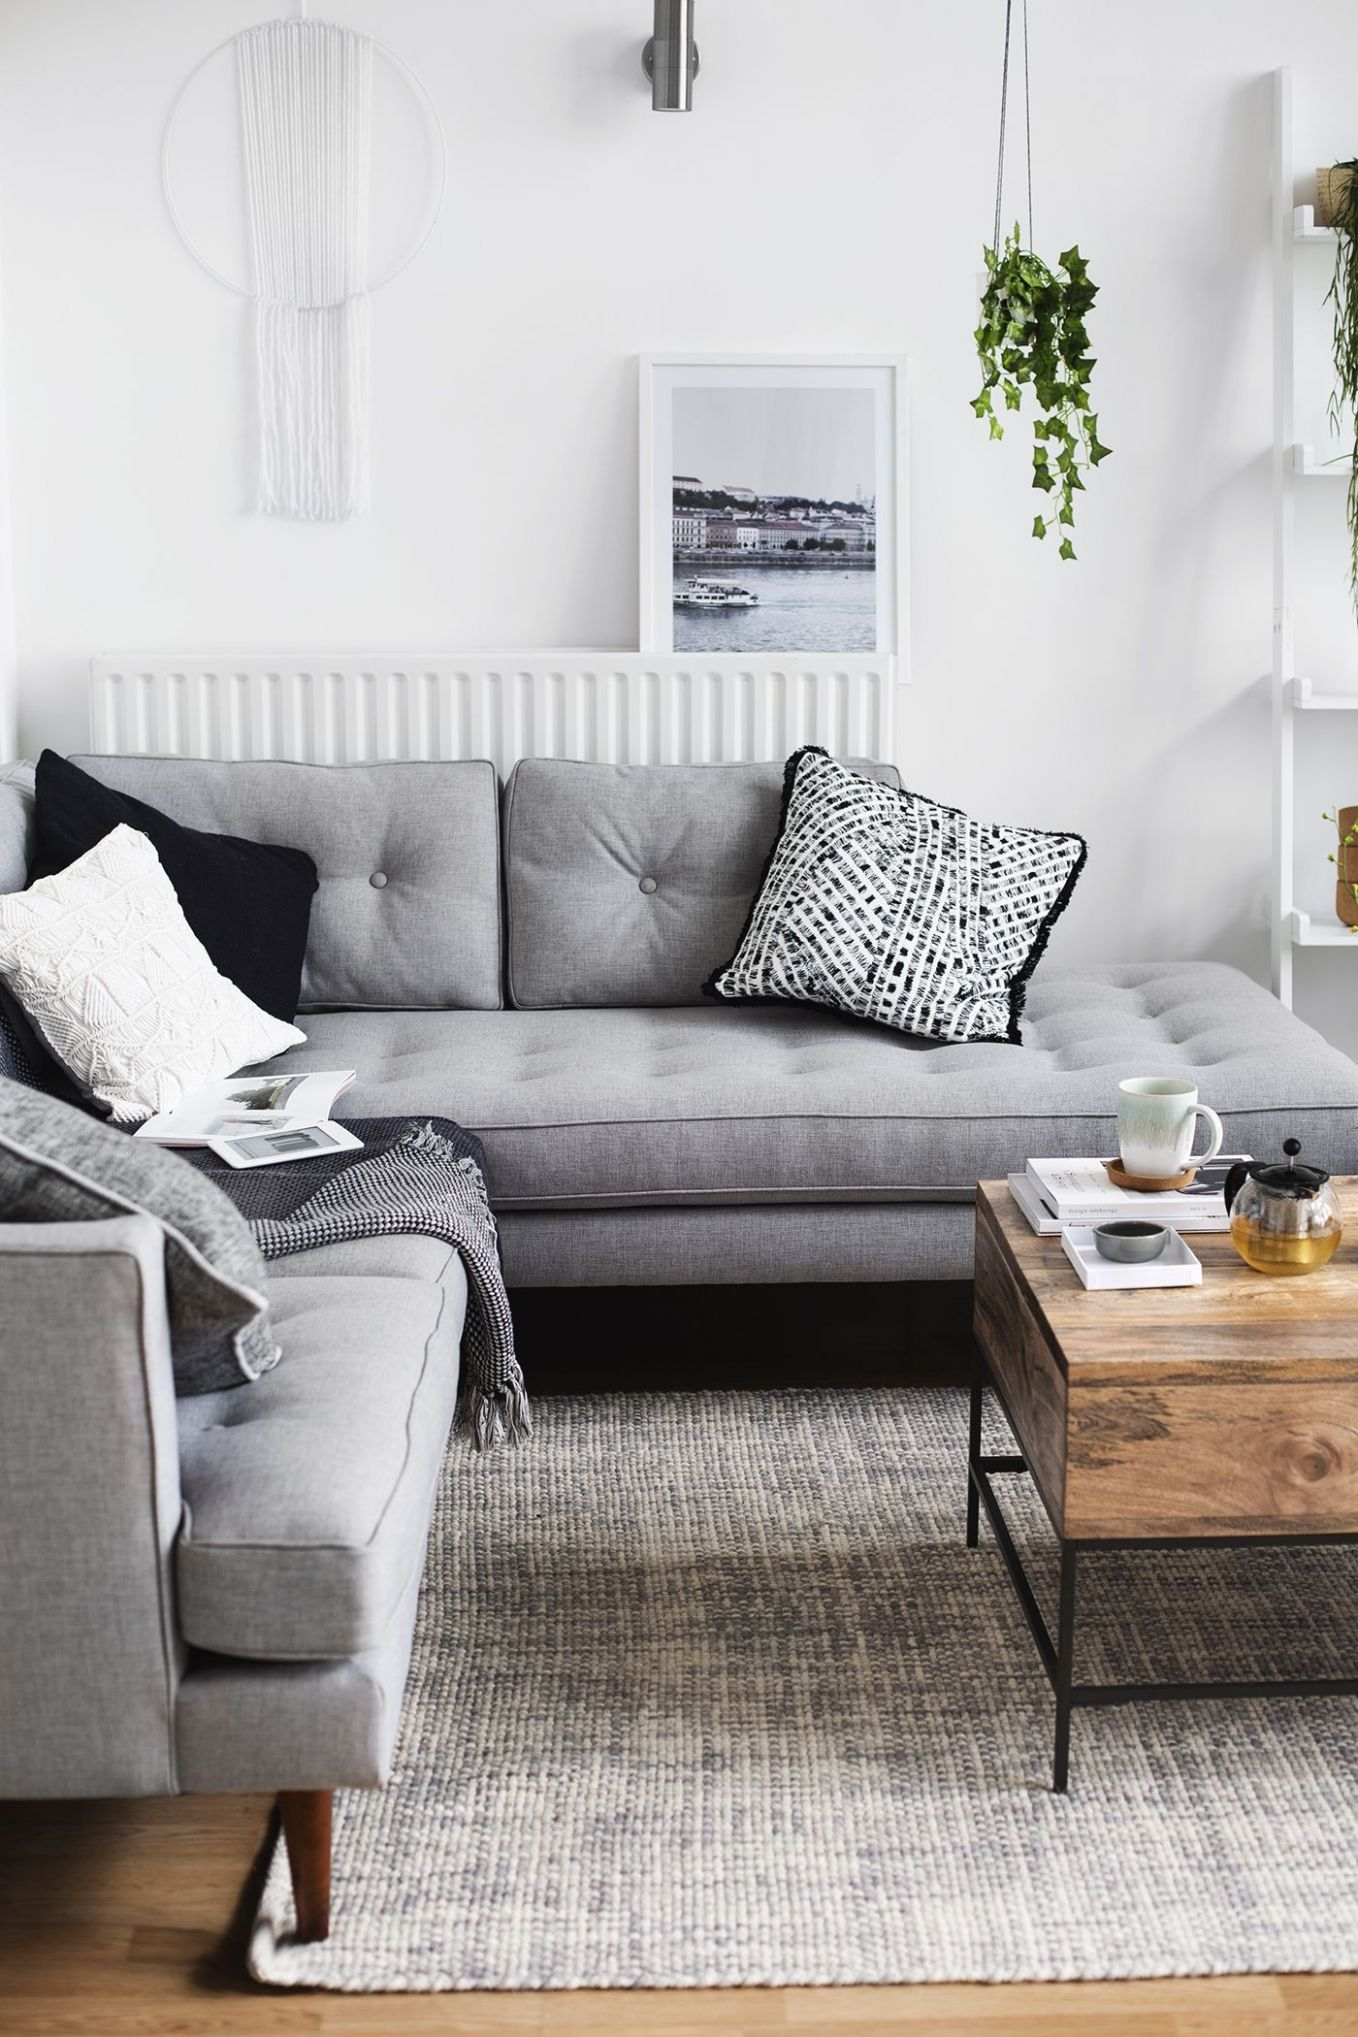 Our Living Room Tour (With images) | Couches living room, Living ...